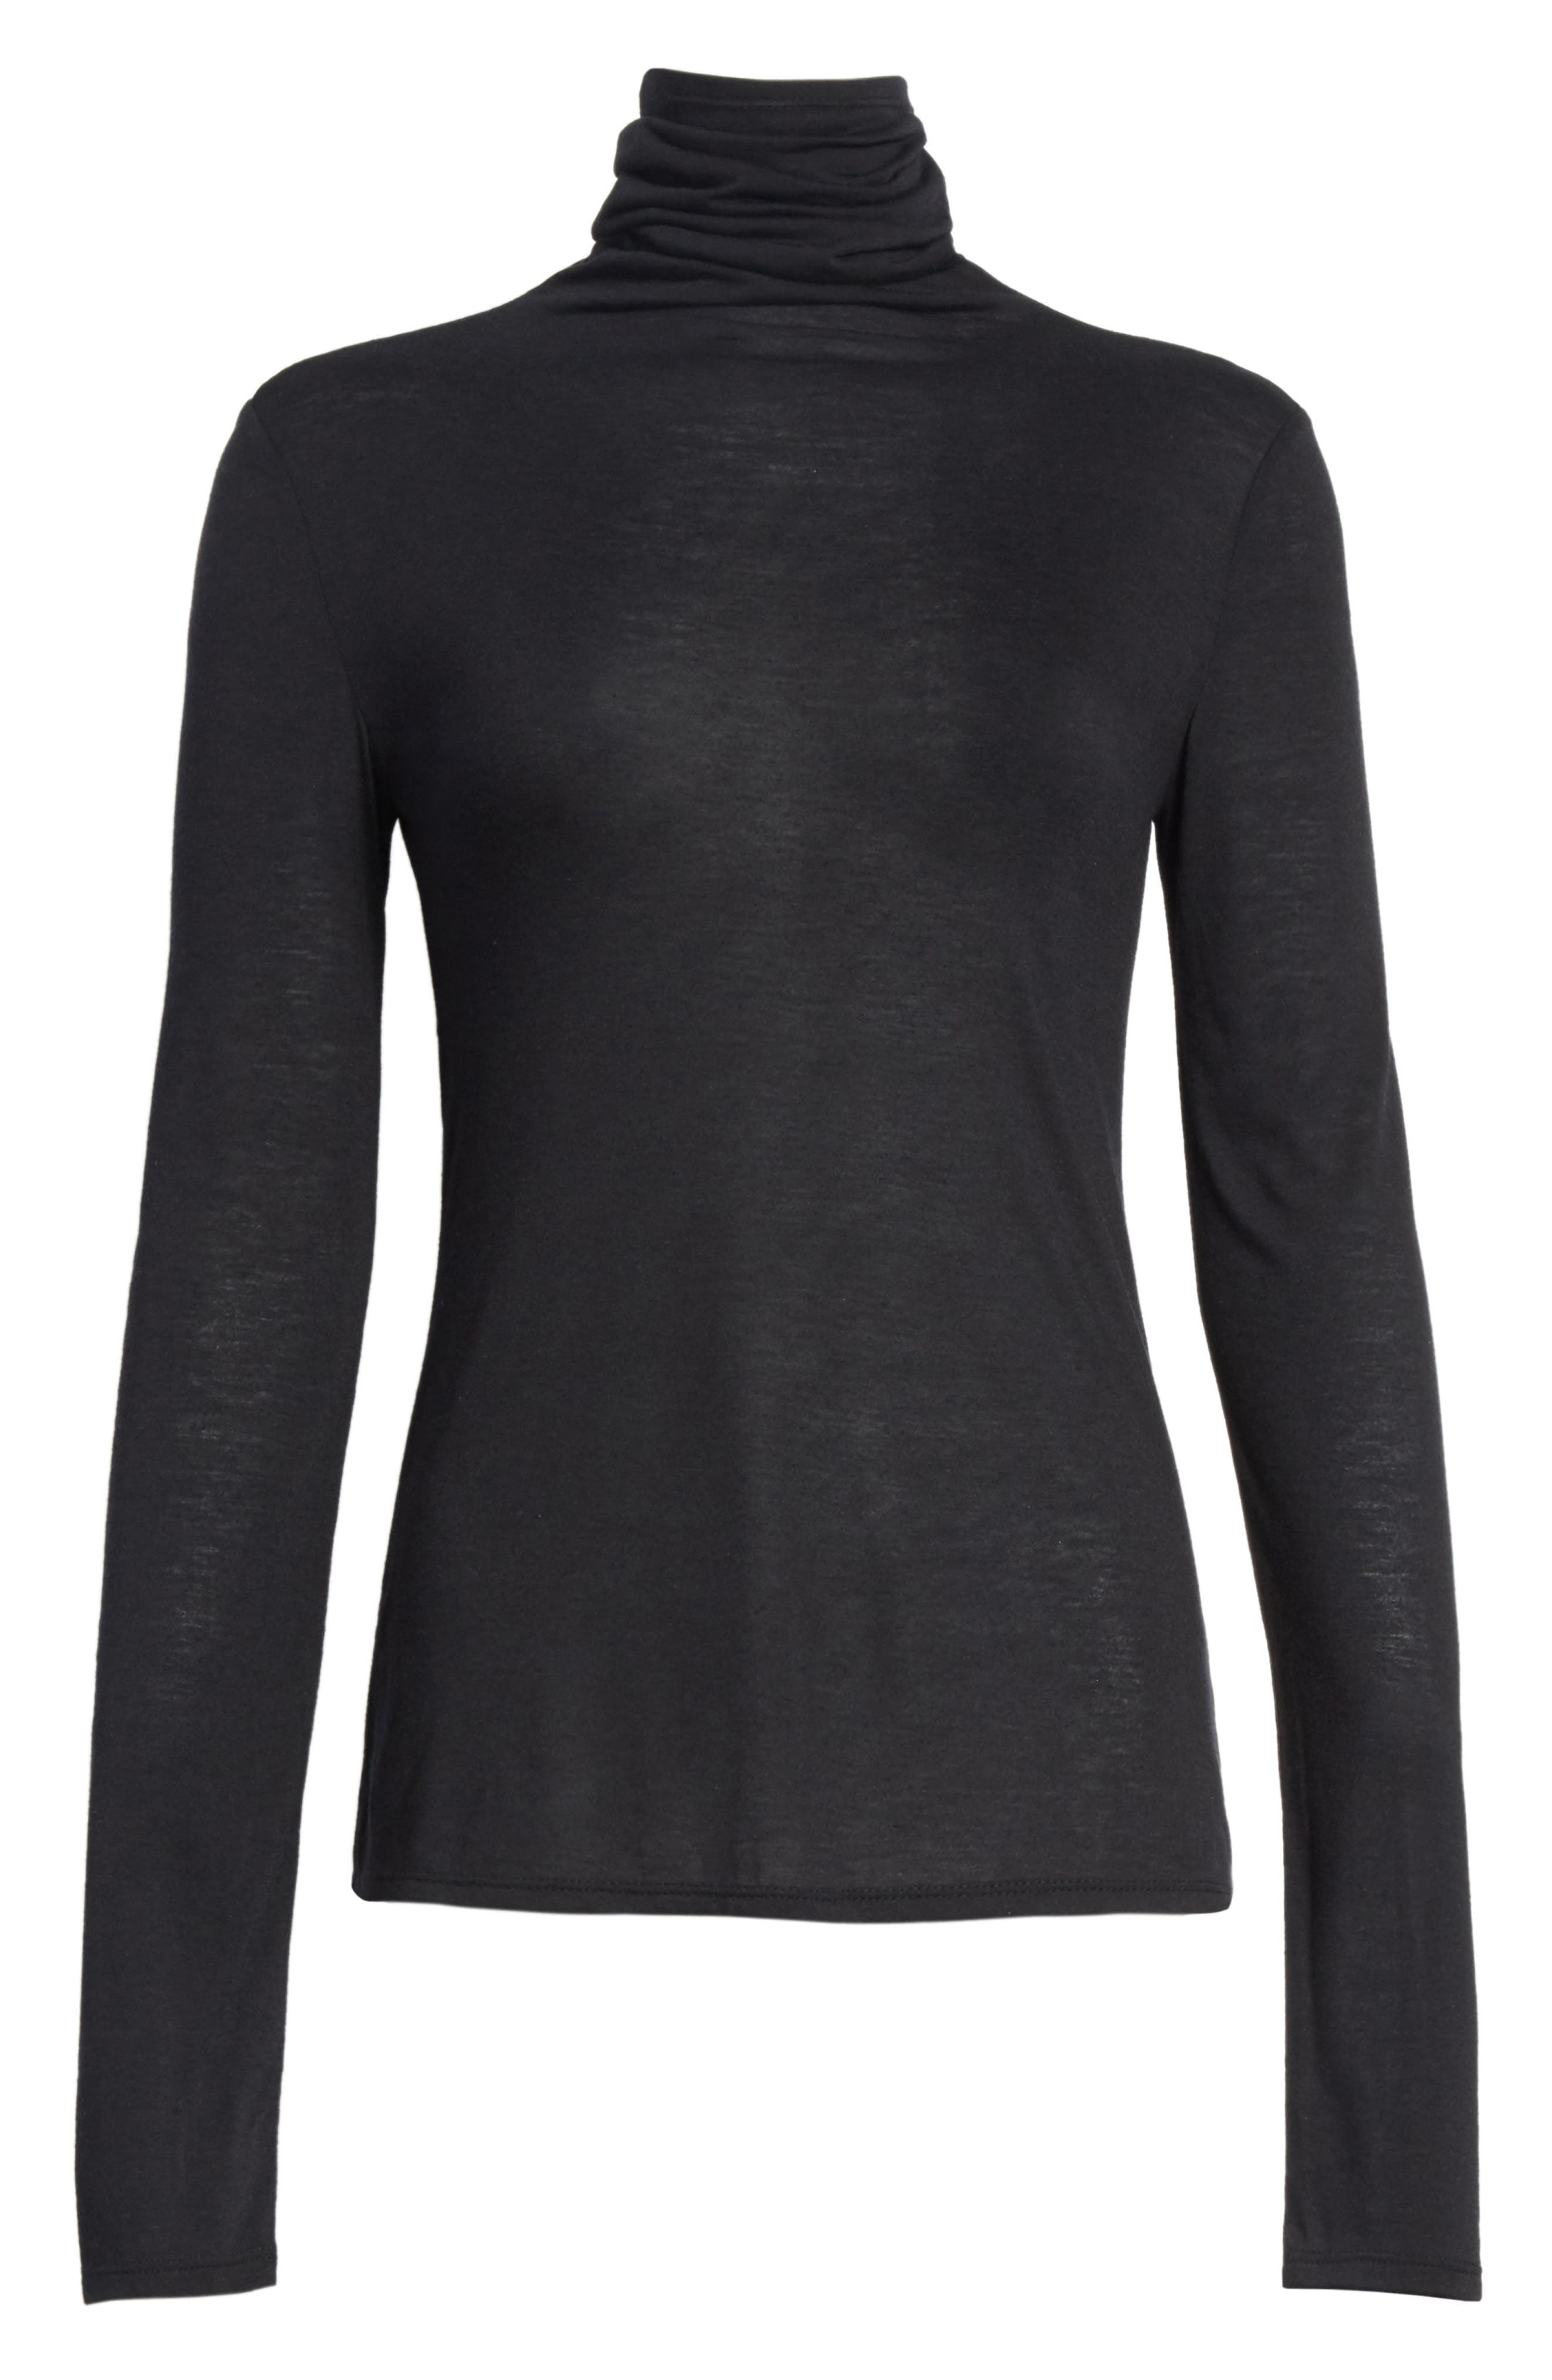 The Perfect Tee Turtleneck,                             Alternate thumbnail 6, color,